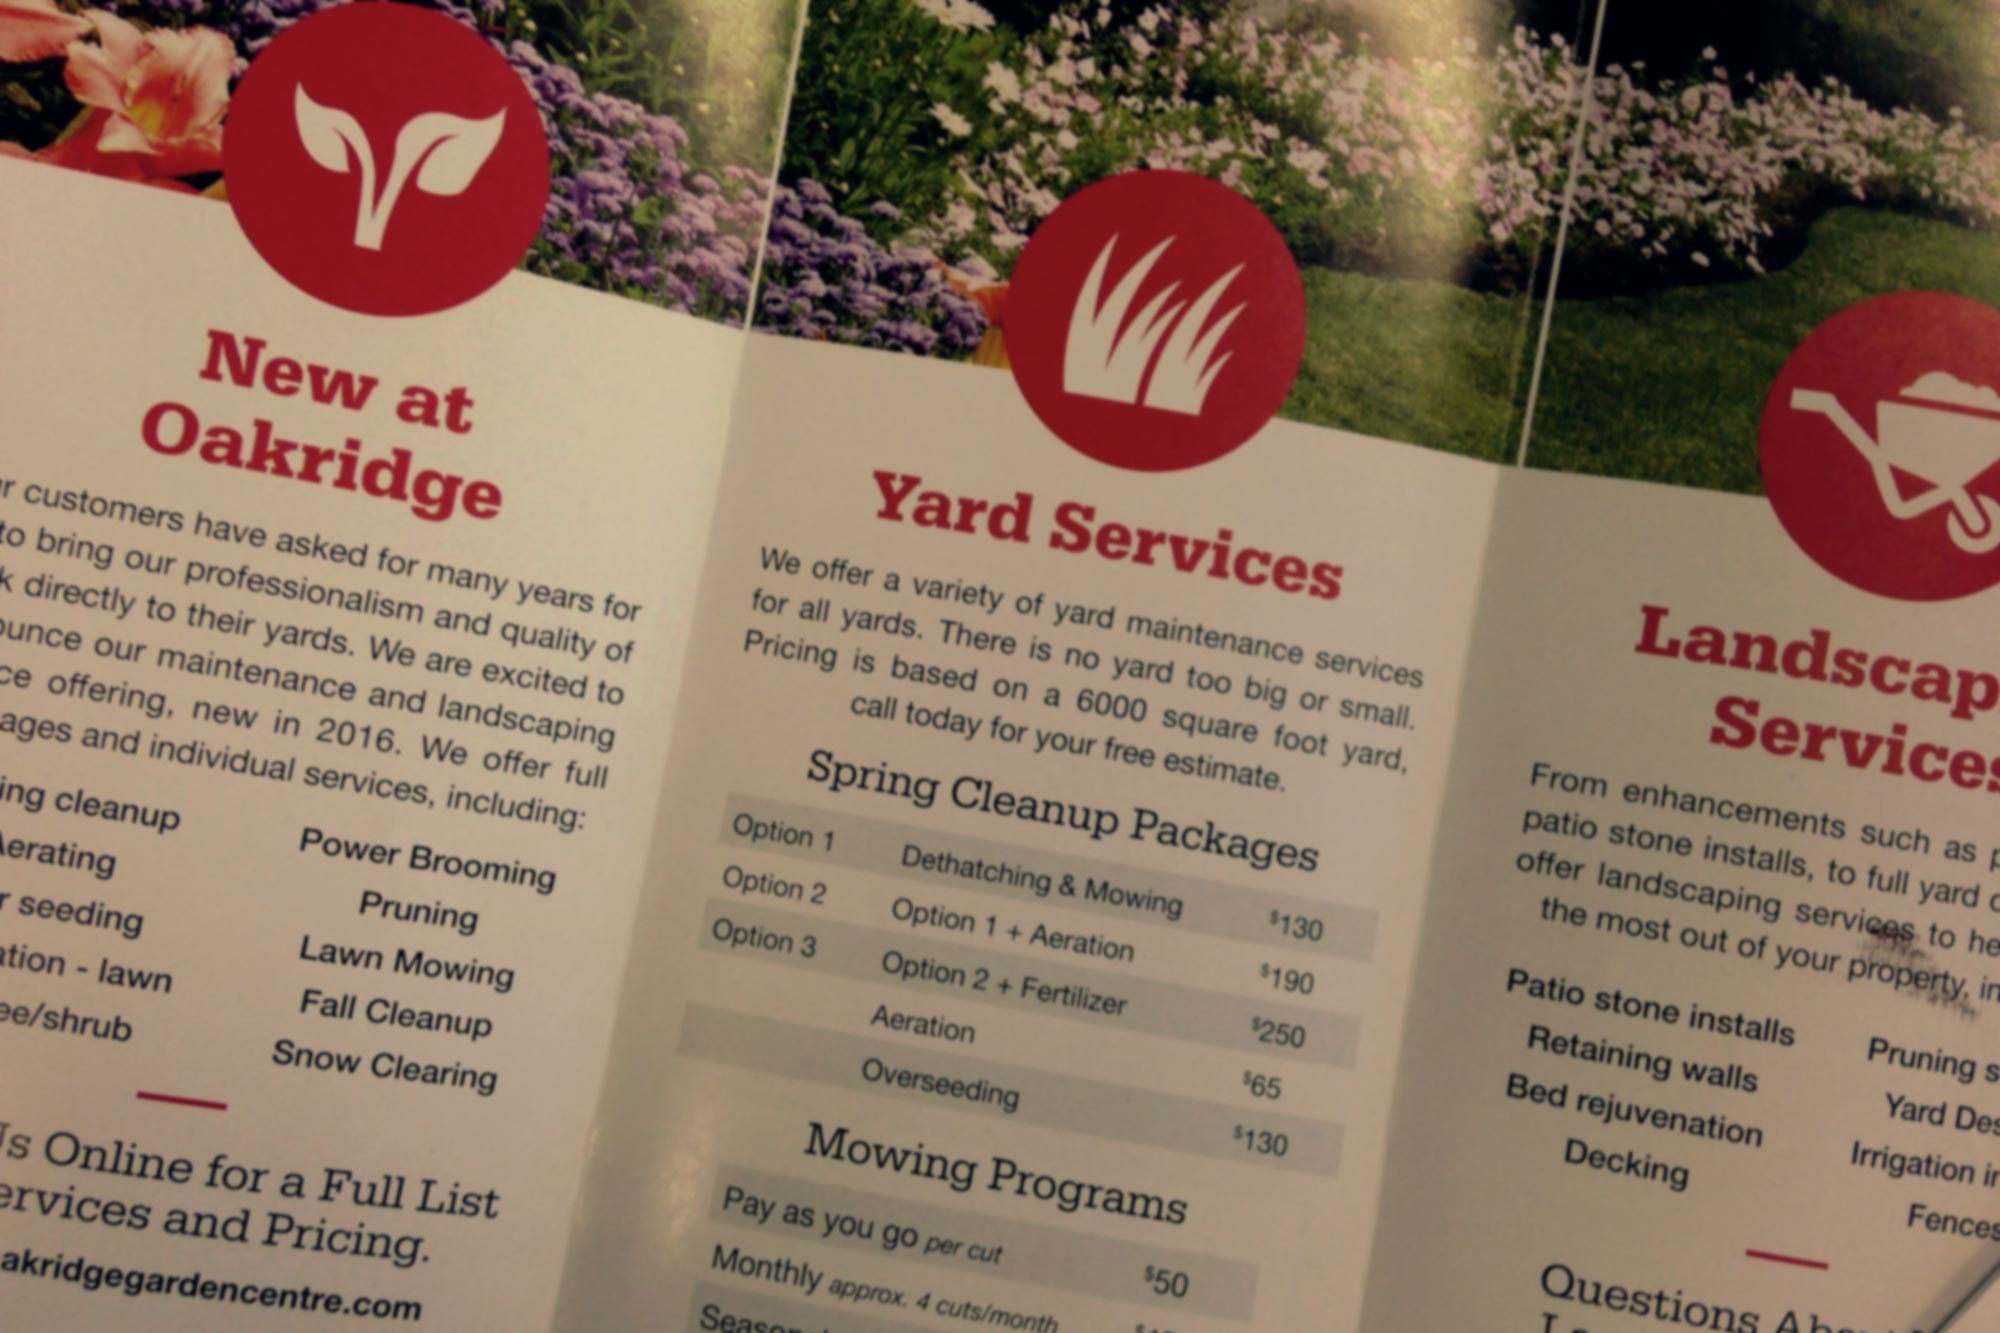 Yard Maintenance & Landscaping Services